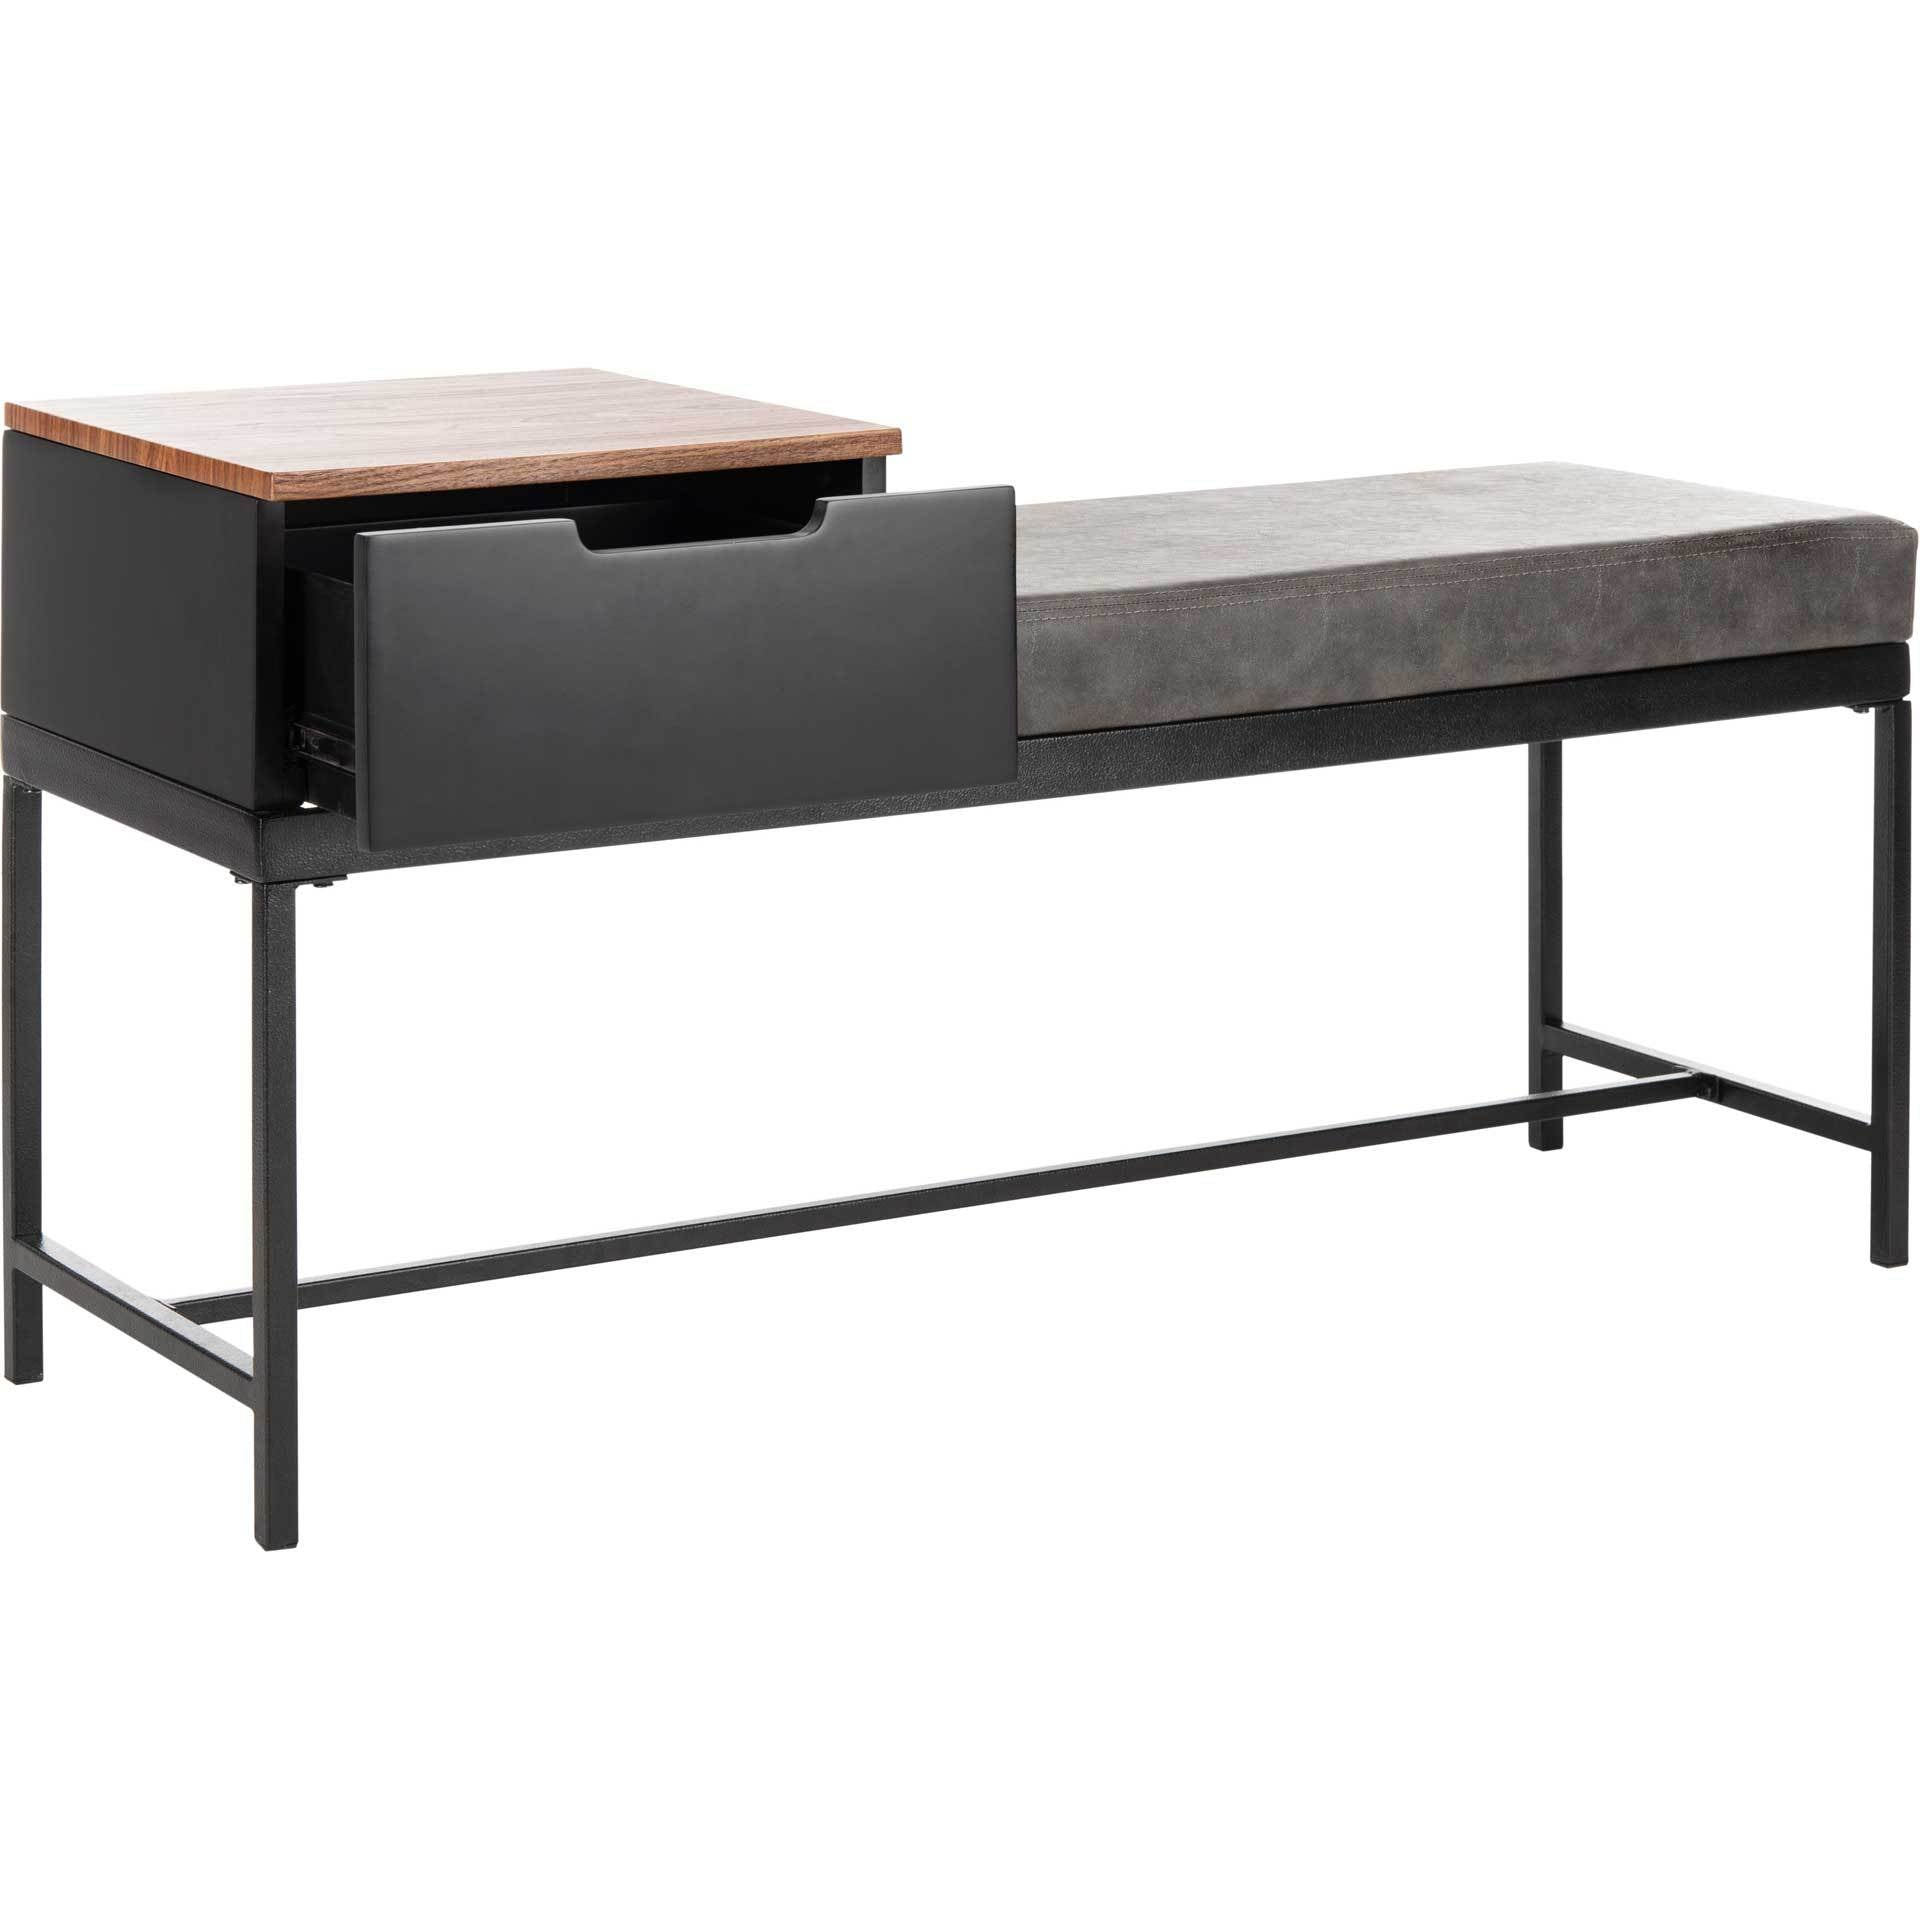 Maxton Bench With Storage Brown/Gray